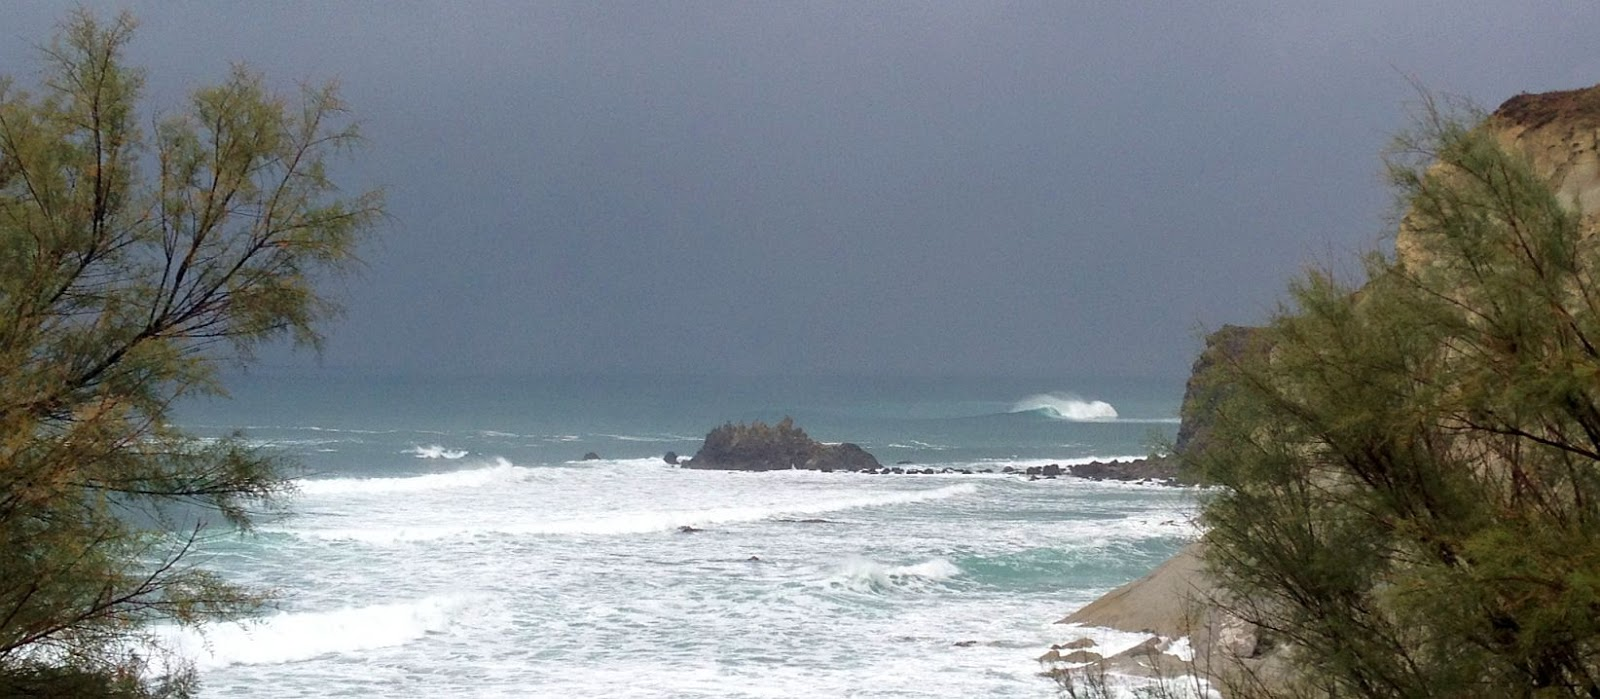 surf sope prevision 02